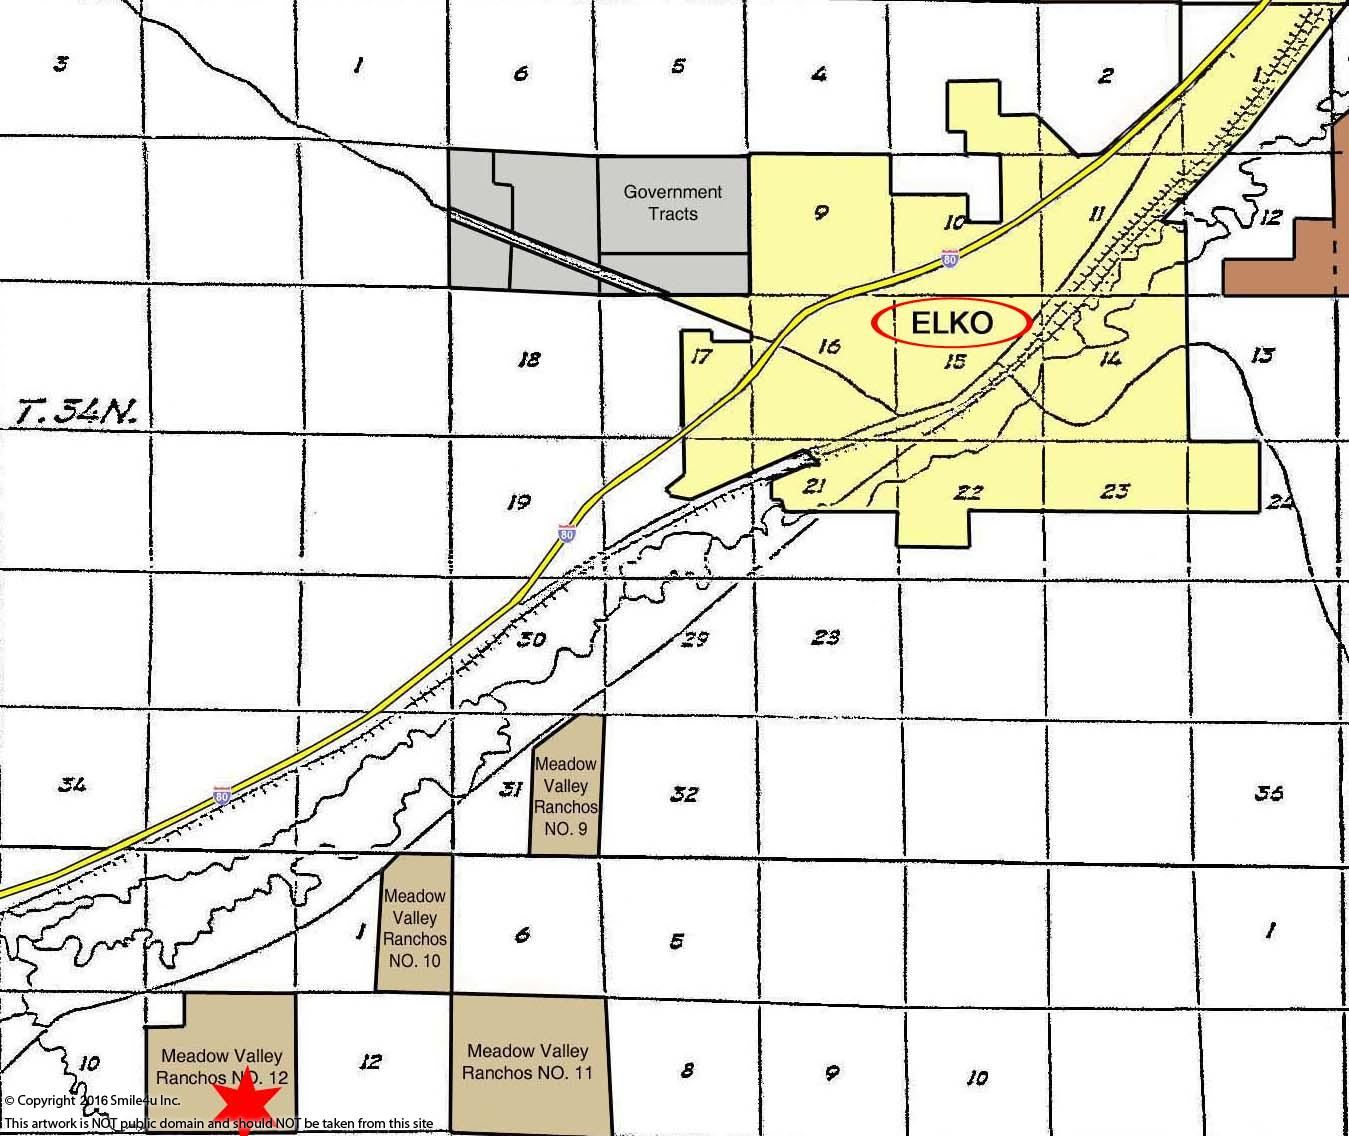 314490_watermarked_Color- Elko - T & R, Section, Subdivision Map 18x24.jpg